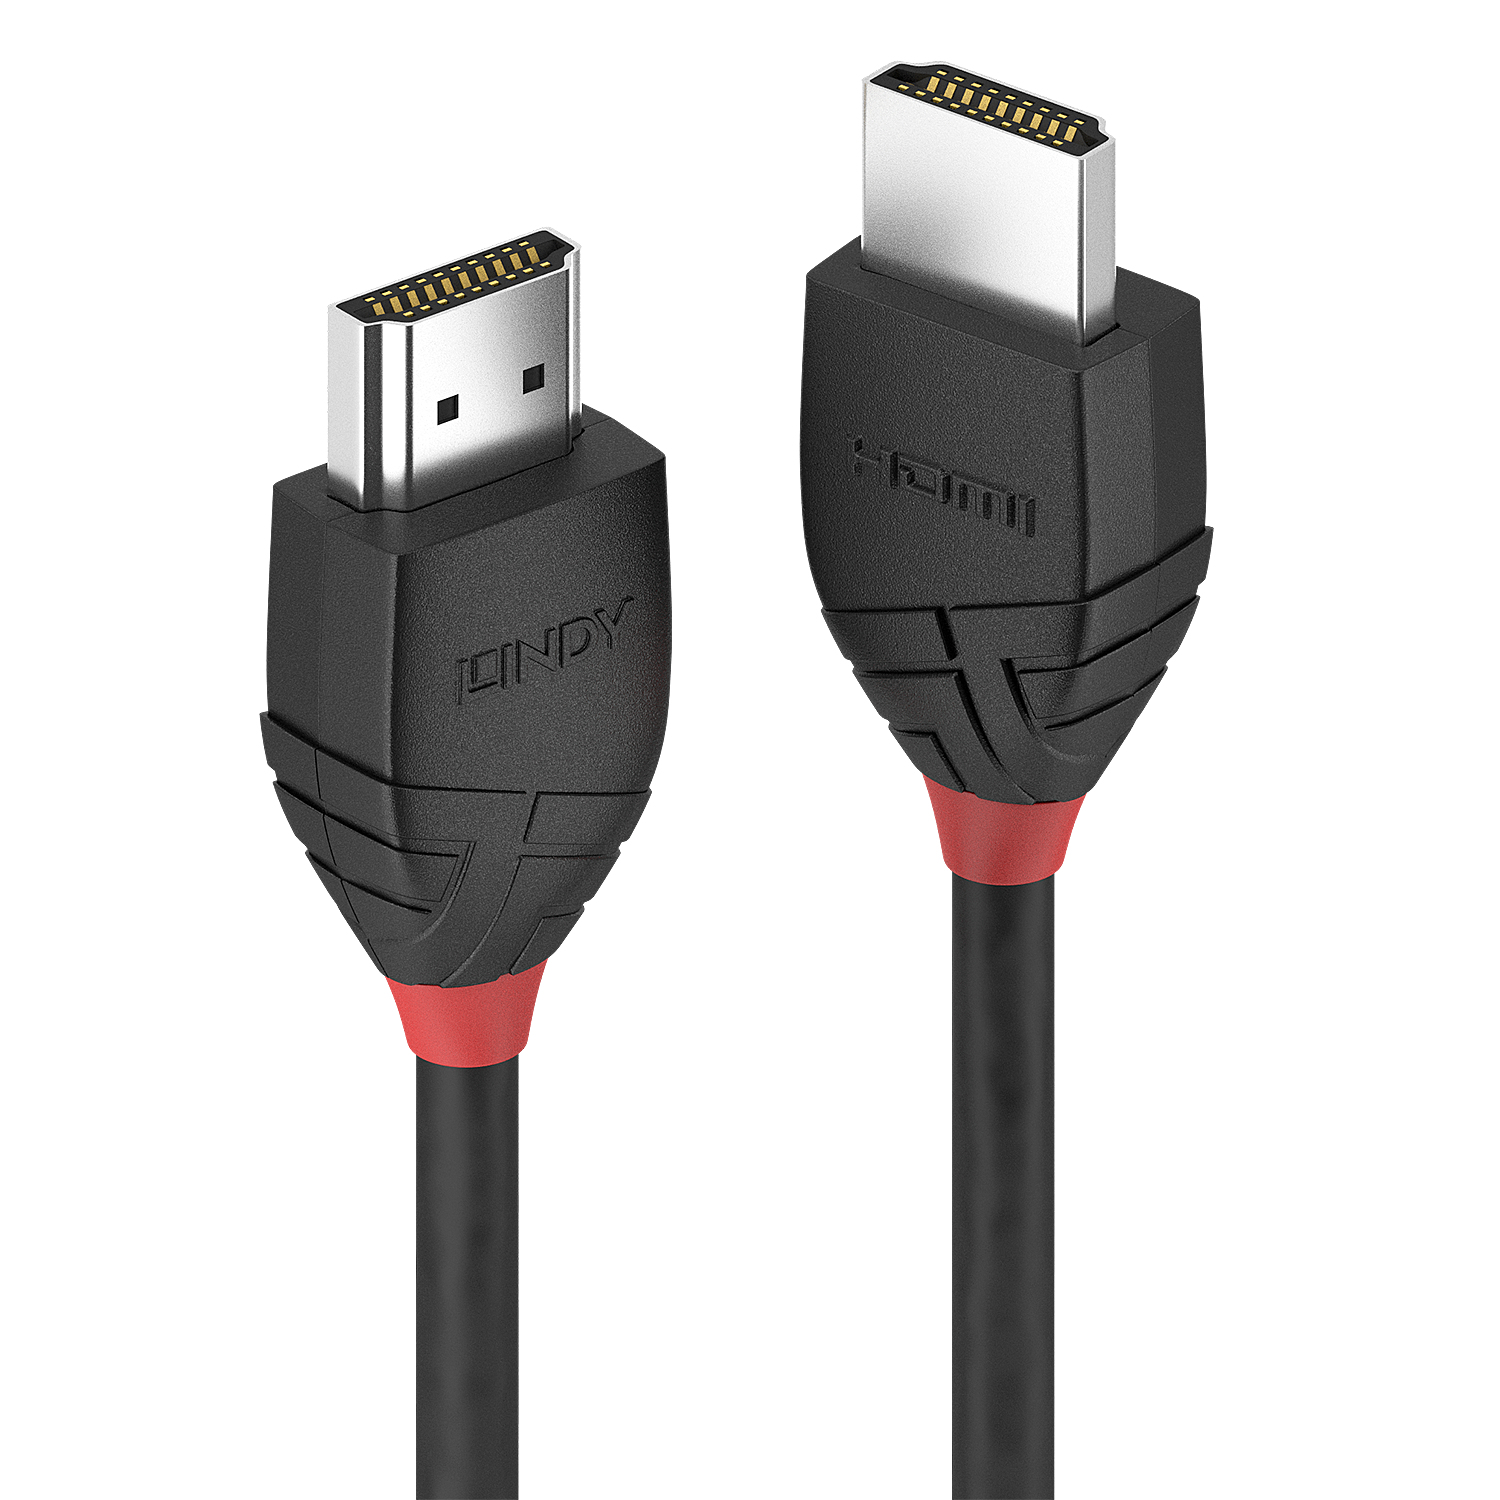 36470 lindy 0.5m High Speed Hdmi Cable, Black Line - NA01